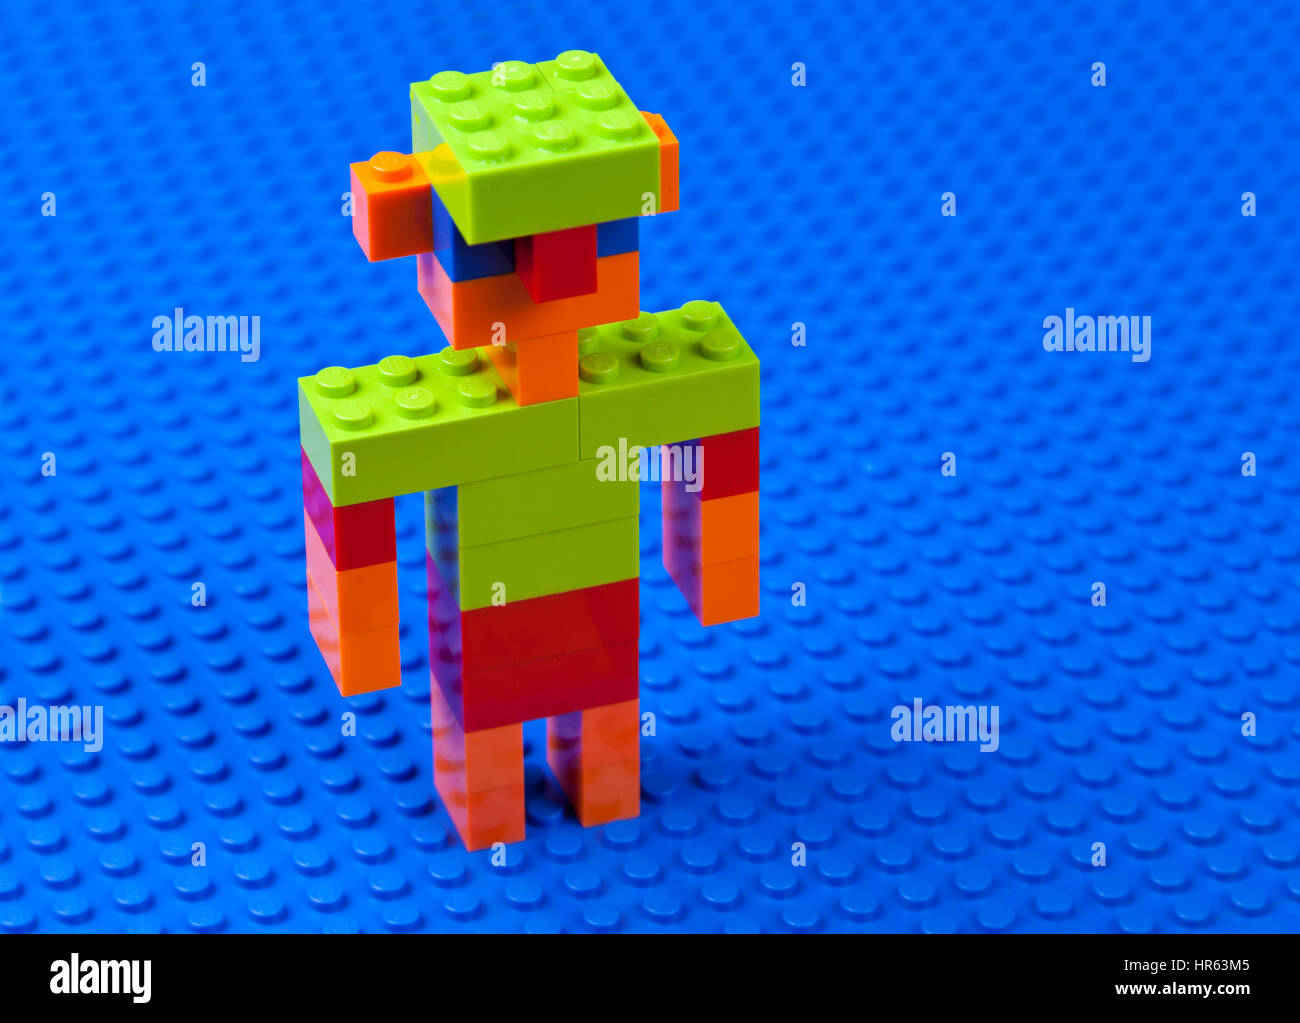 Man,  boy, male with jug-ears and a green cap built of Lego bricks on a blue Lego base plate -  dabbling or wading - Stock Image